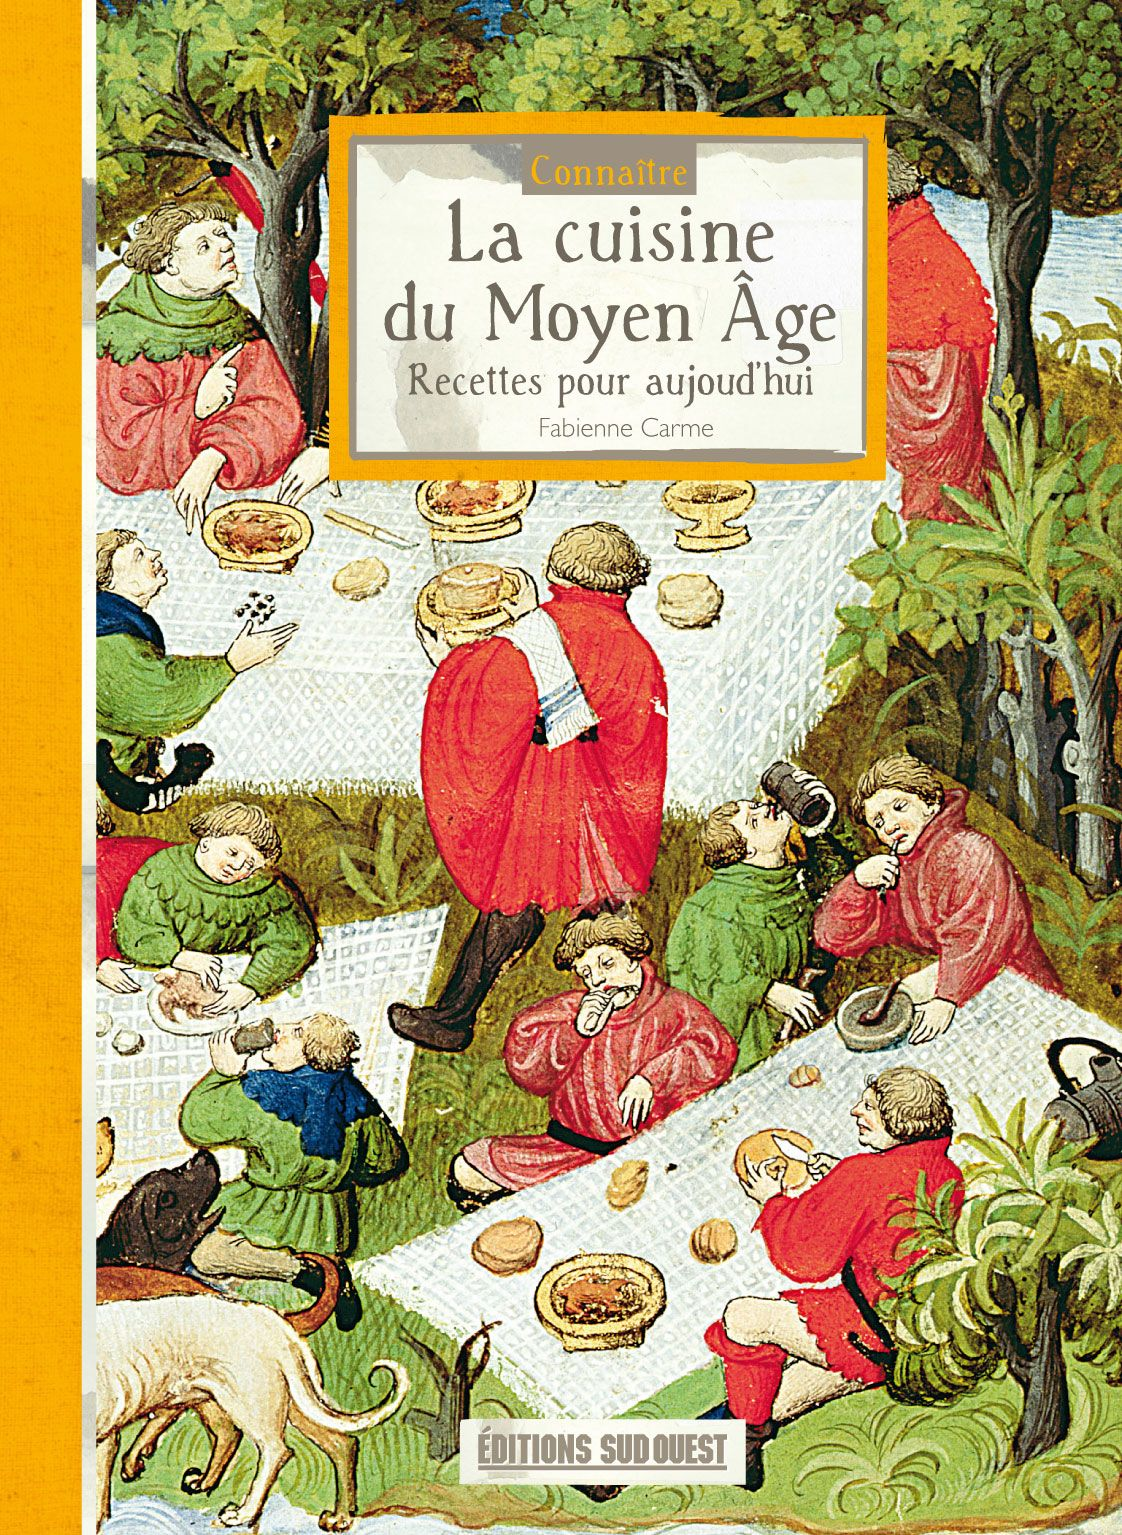 Cuisine of the middle ages recipes for today historical food cuisine of the middle ages recipes for today forumfinder Images